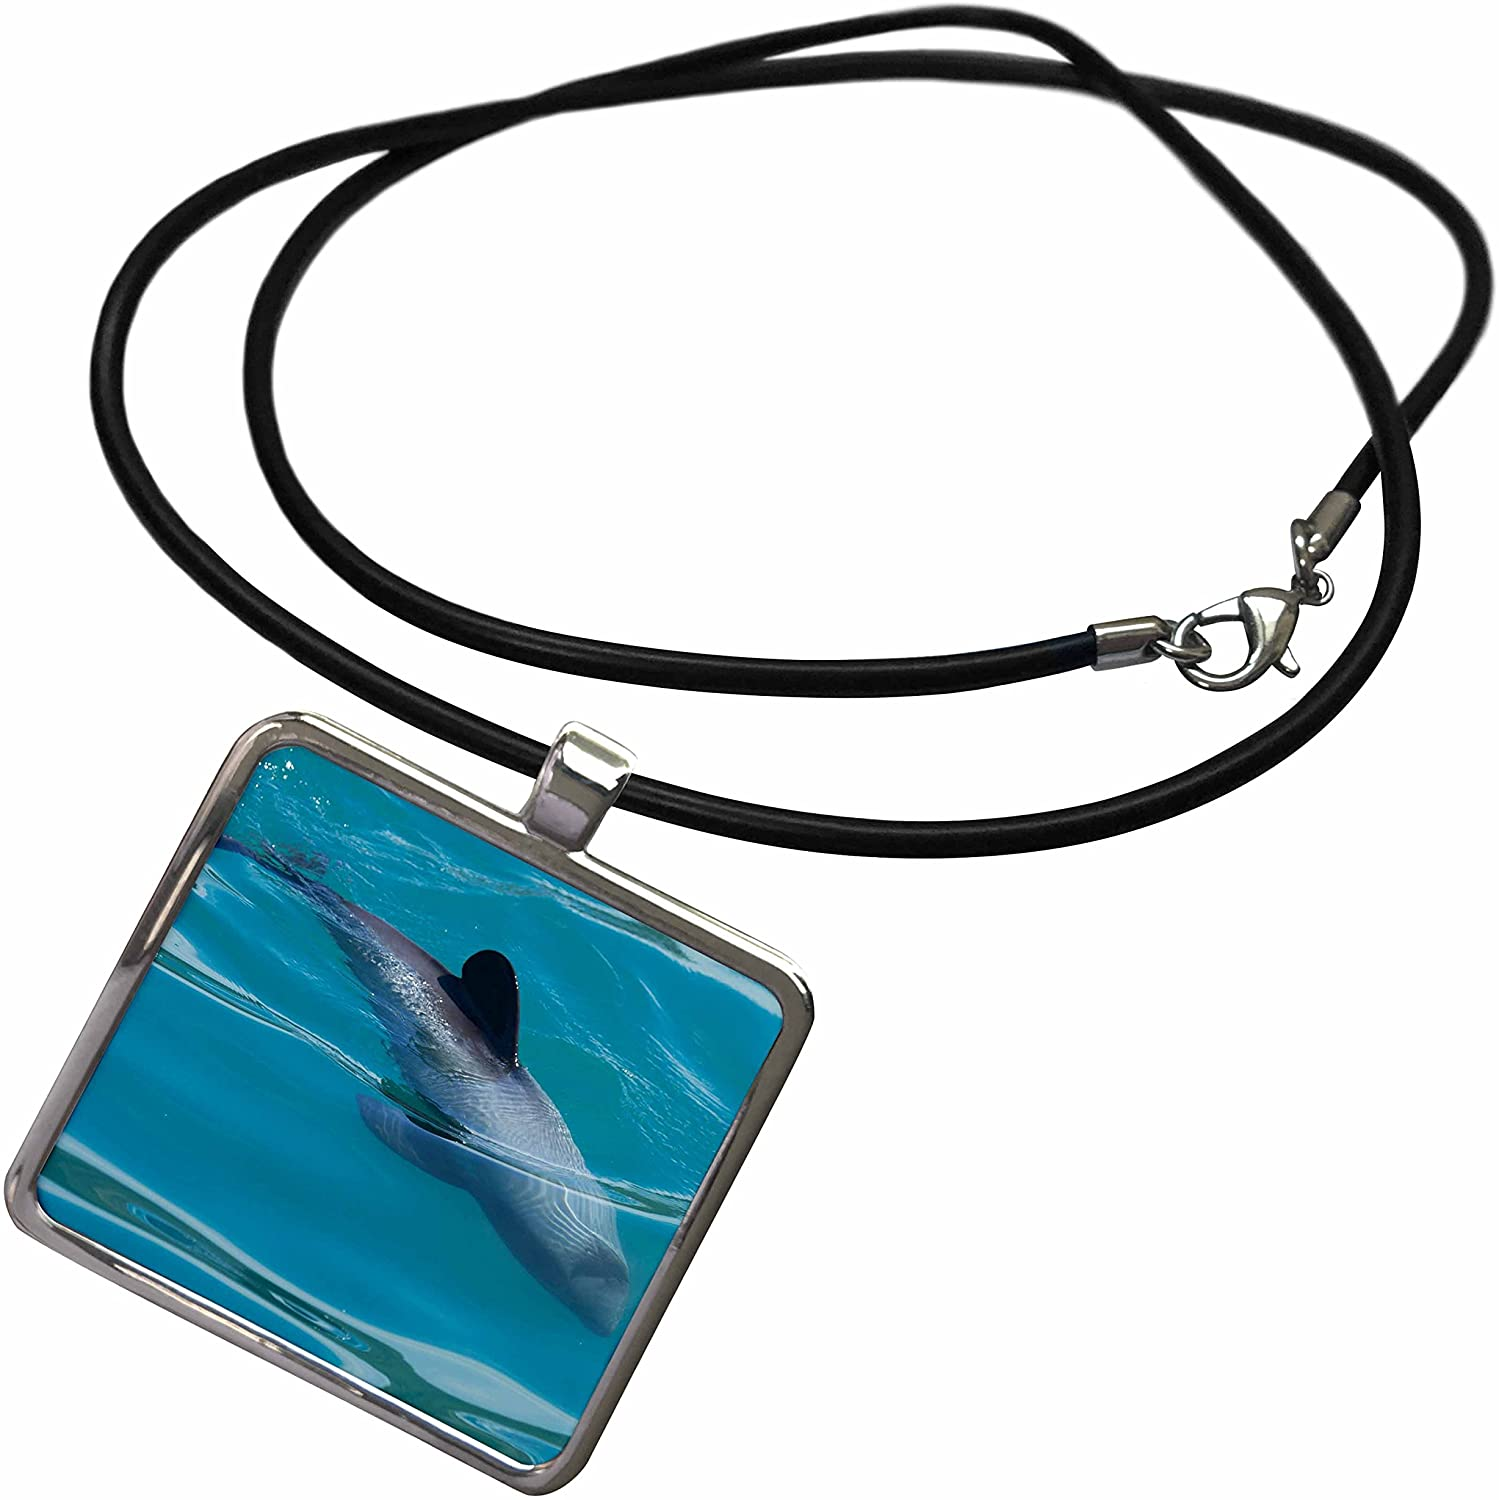 3dRose Danita Delimont - Dolphins - Hectors Dolphin, Akaroa Harbour, New Zealand - AU02 DWA6778 - David Wall - Necklace with Rectangle Pendant (ncl_133674)